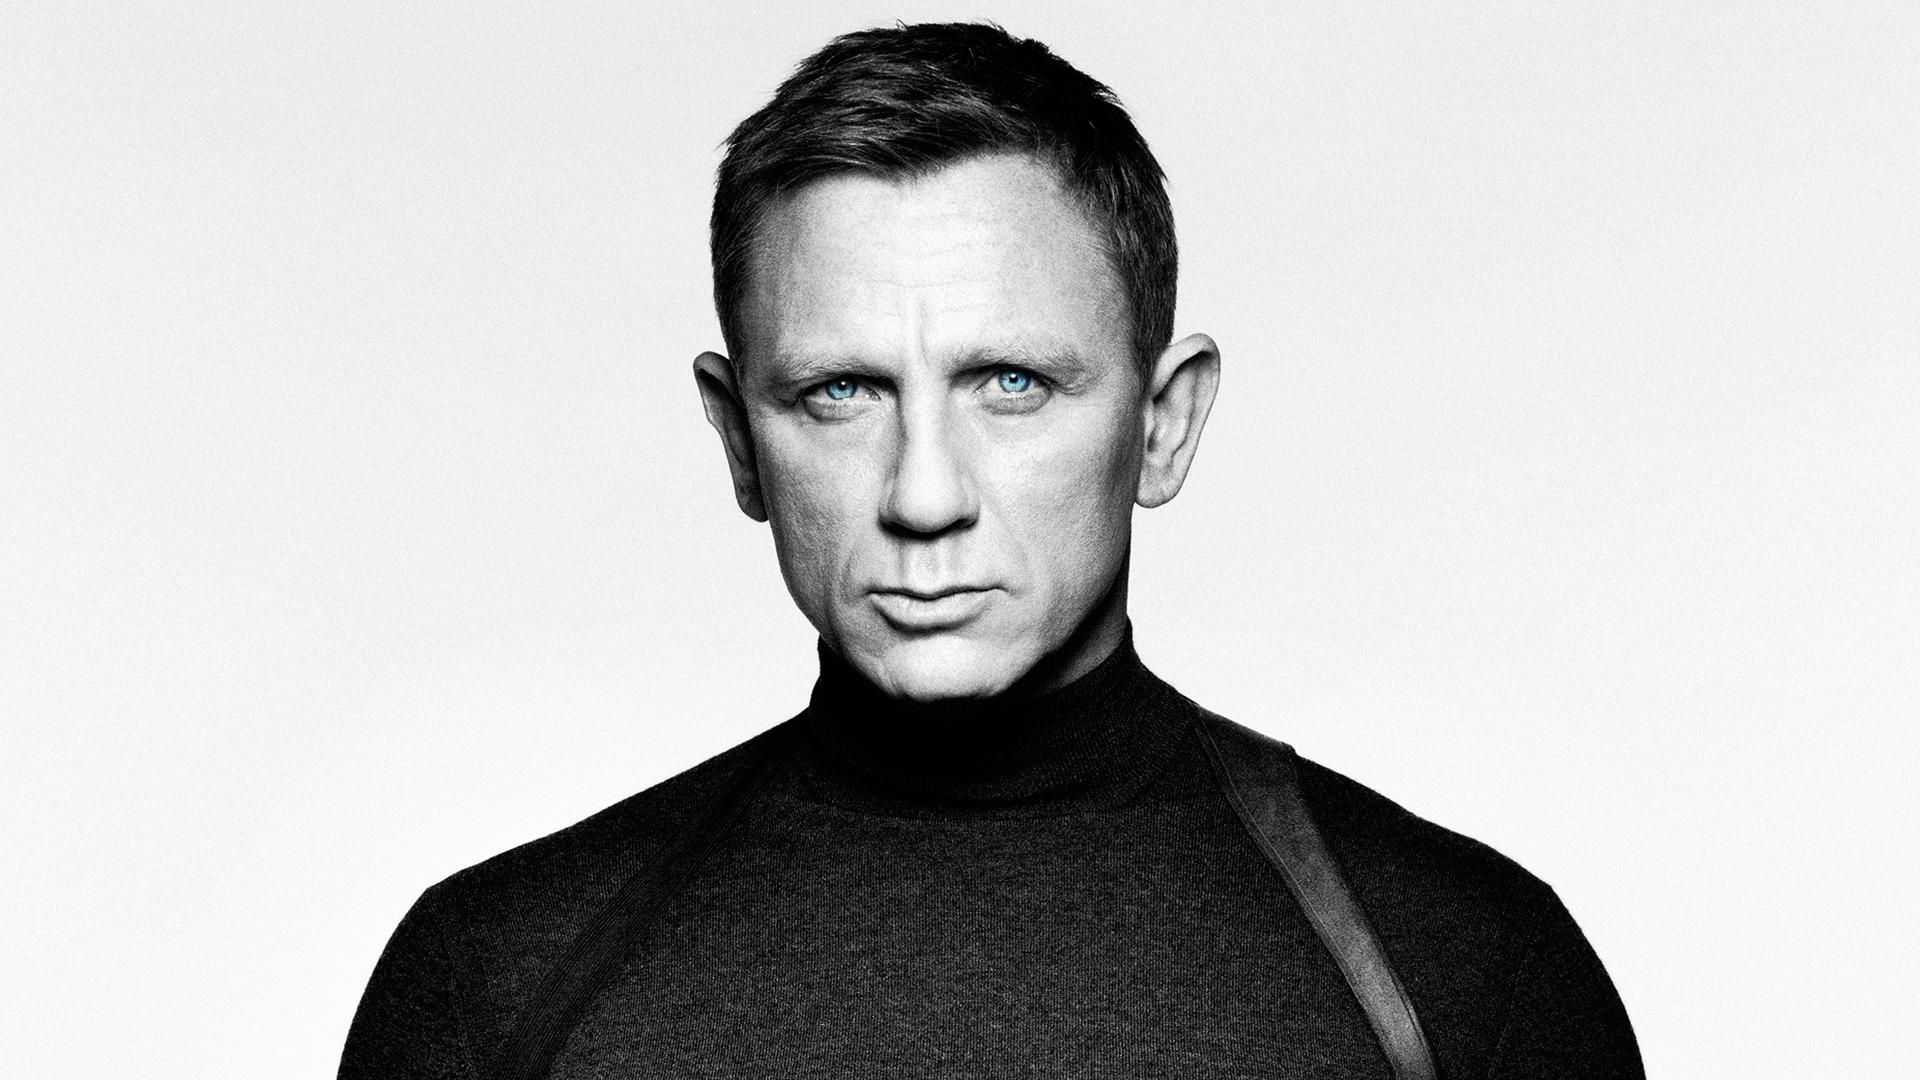 an analysis of the different characteristics of james bond that make him a perfect man